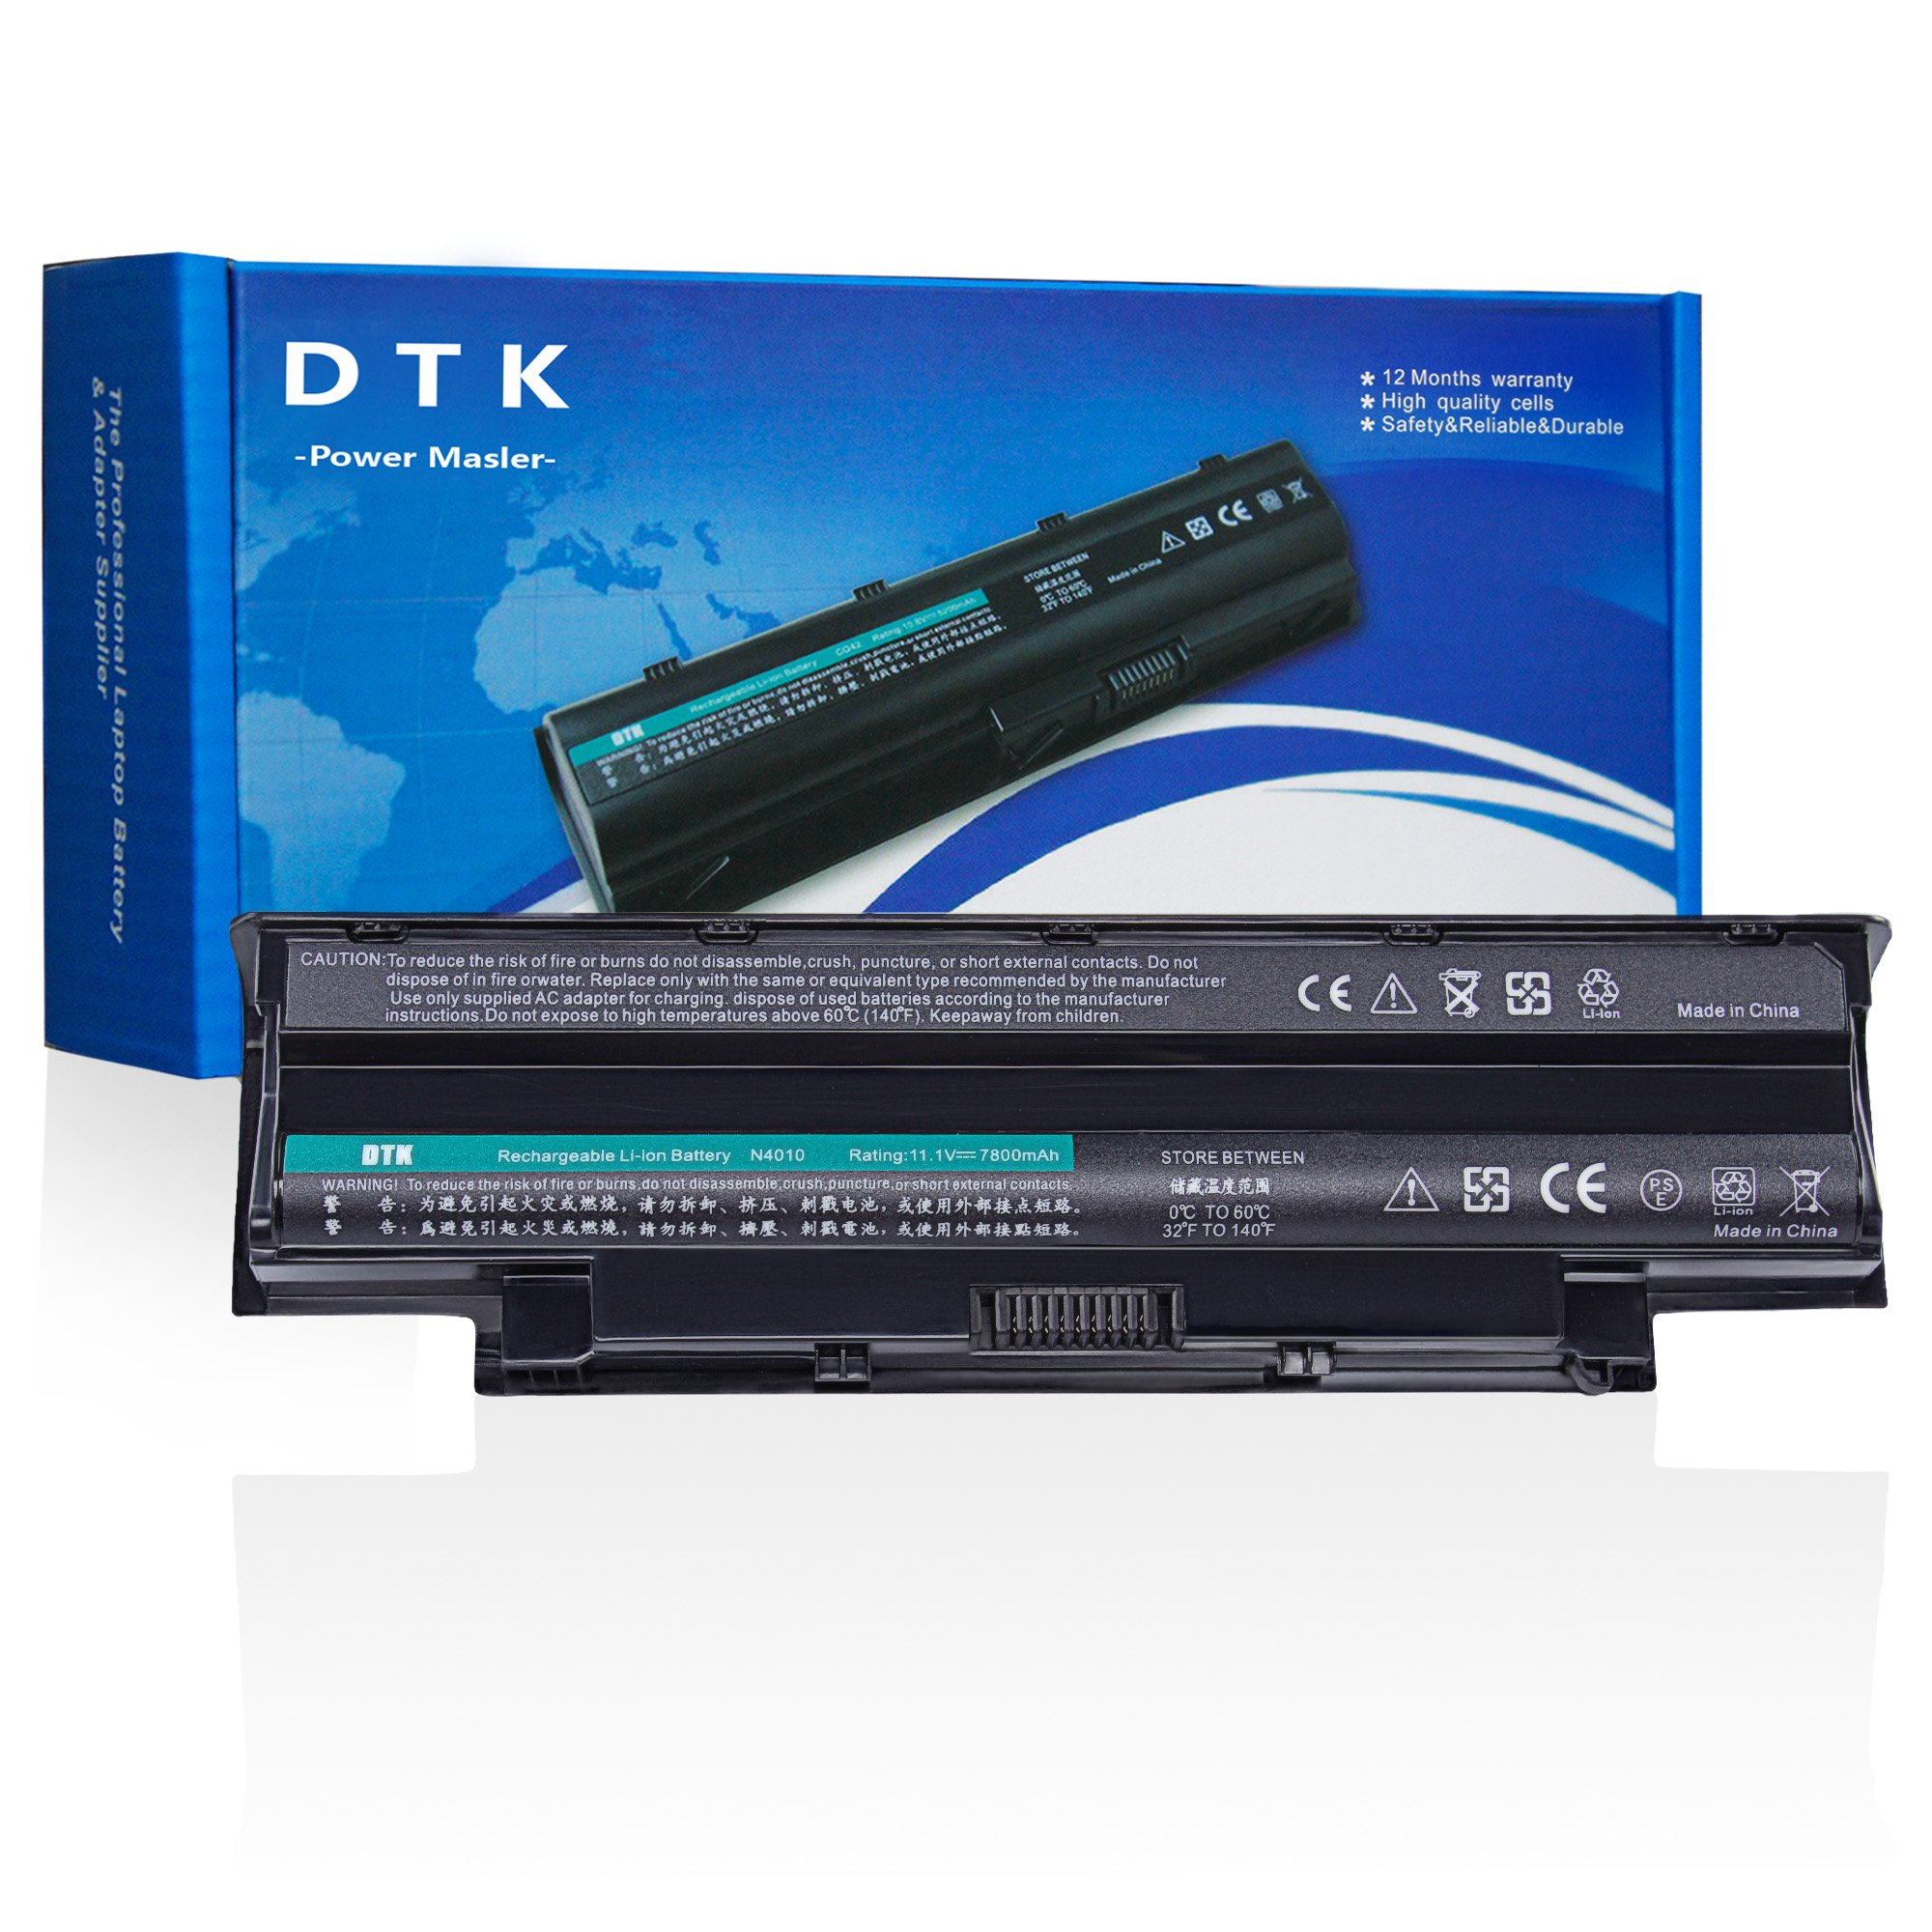 Dtk Notebook Laptop Battery for Dell Inspiron 3420 3520 13r 14r 15r